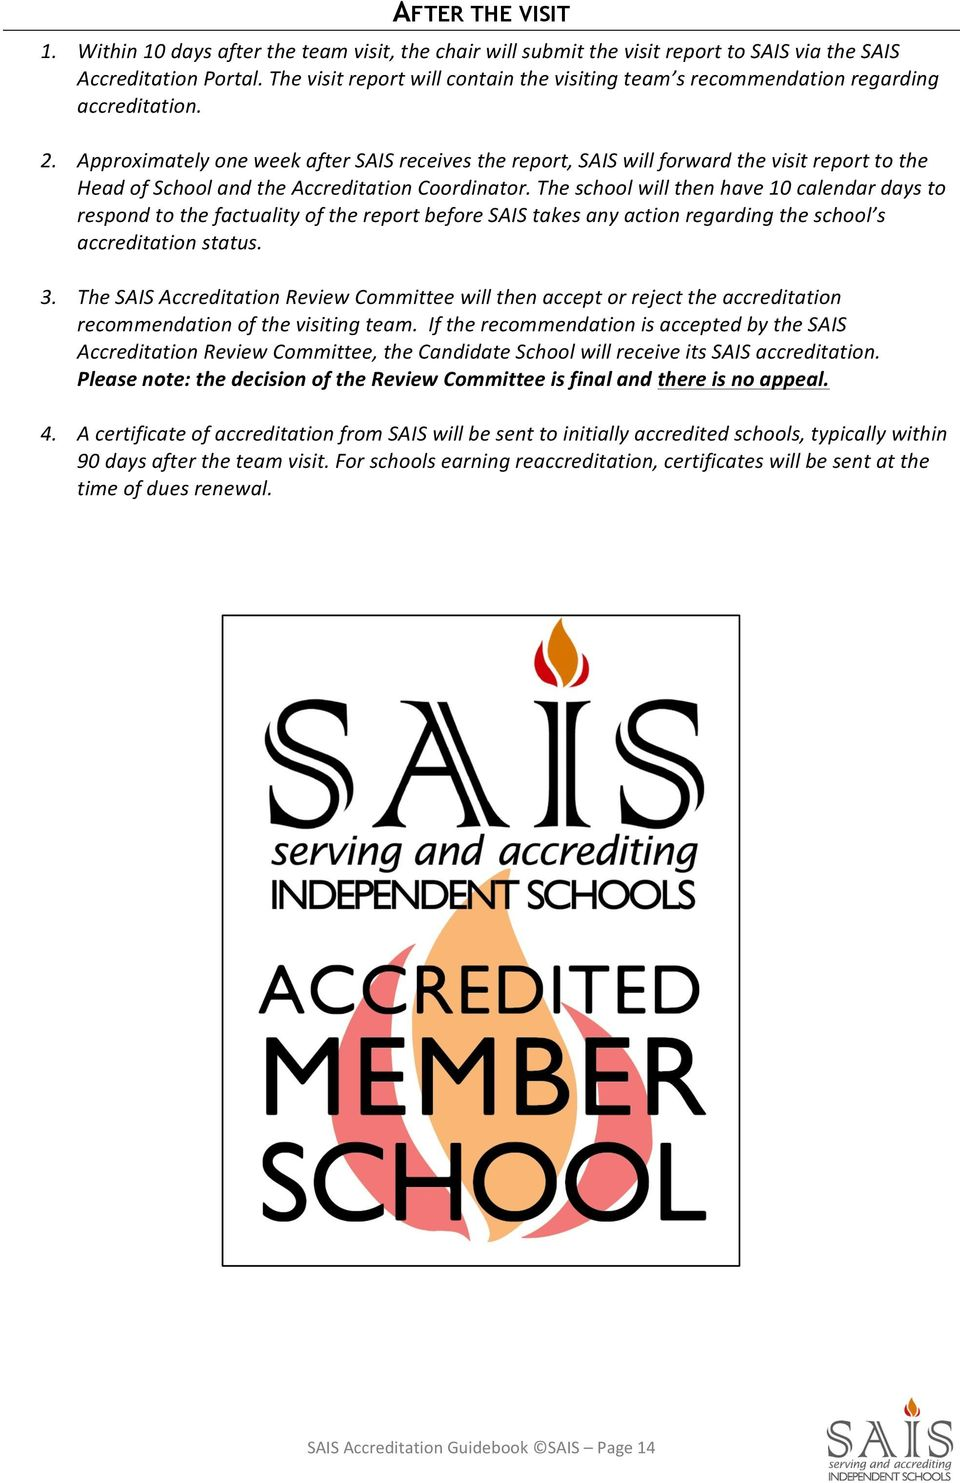 Approximately one week after SAIS receives the report, SAIS will forward the visit report to the Head of School and the Accreditation Coordinator.